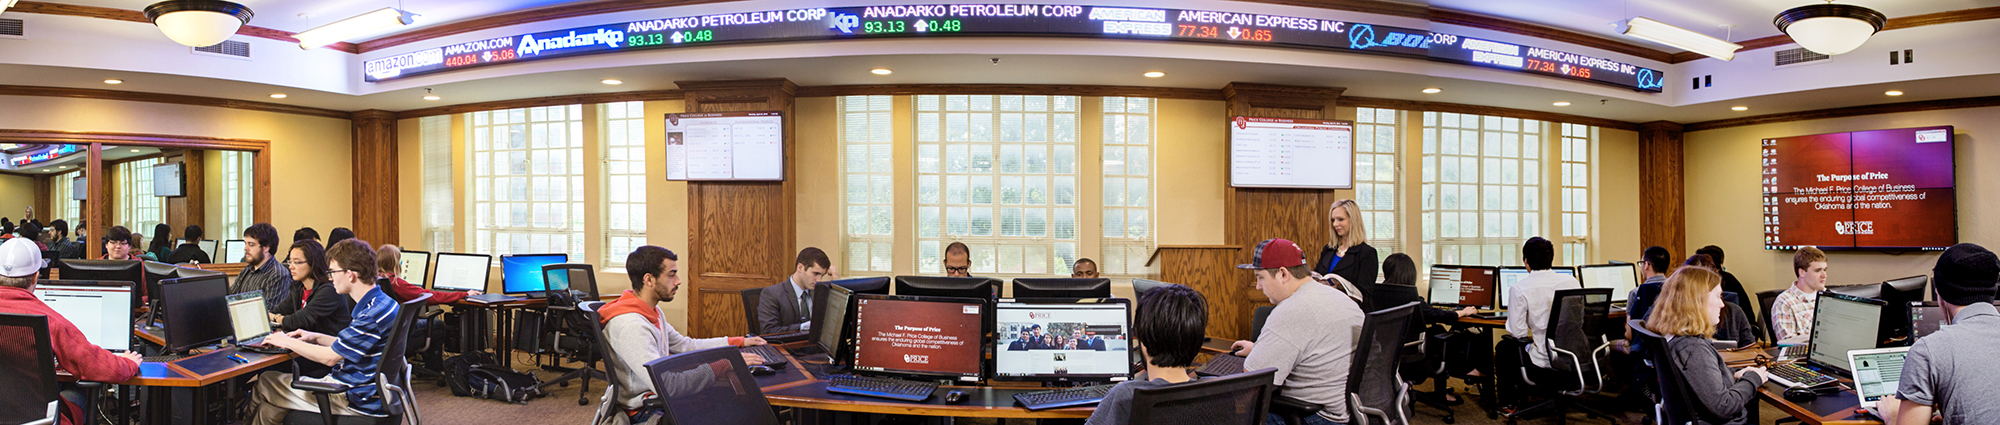 Ticker Room at Price College